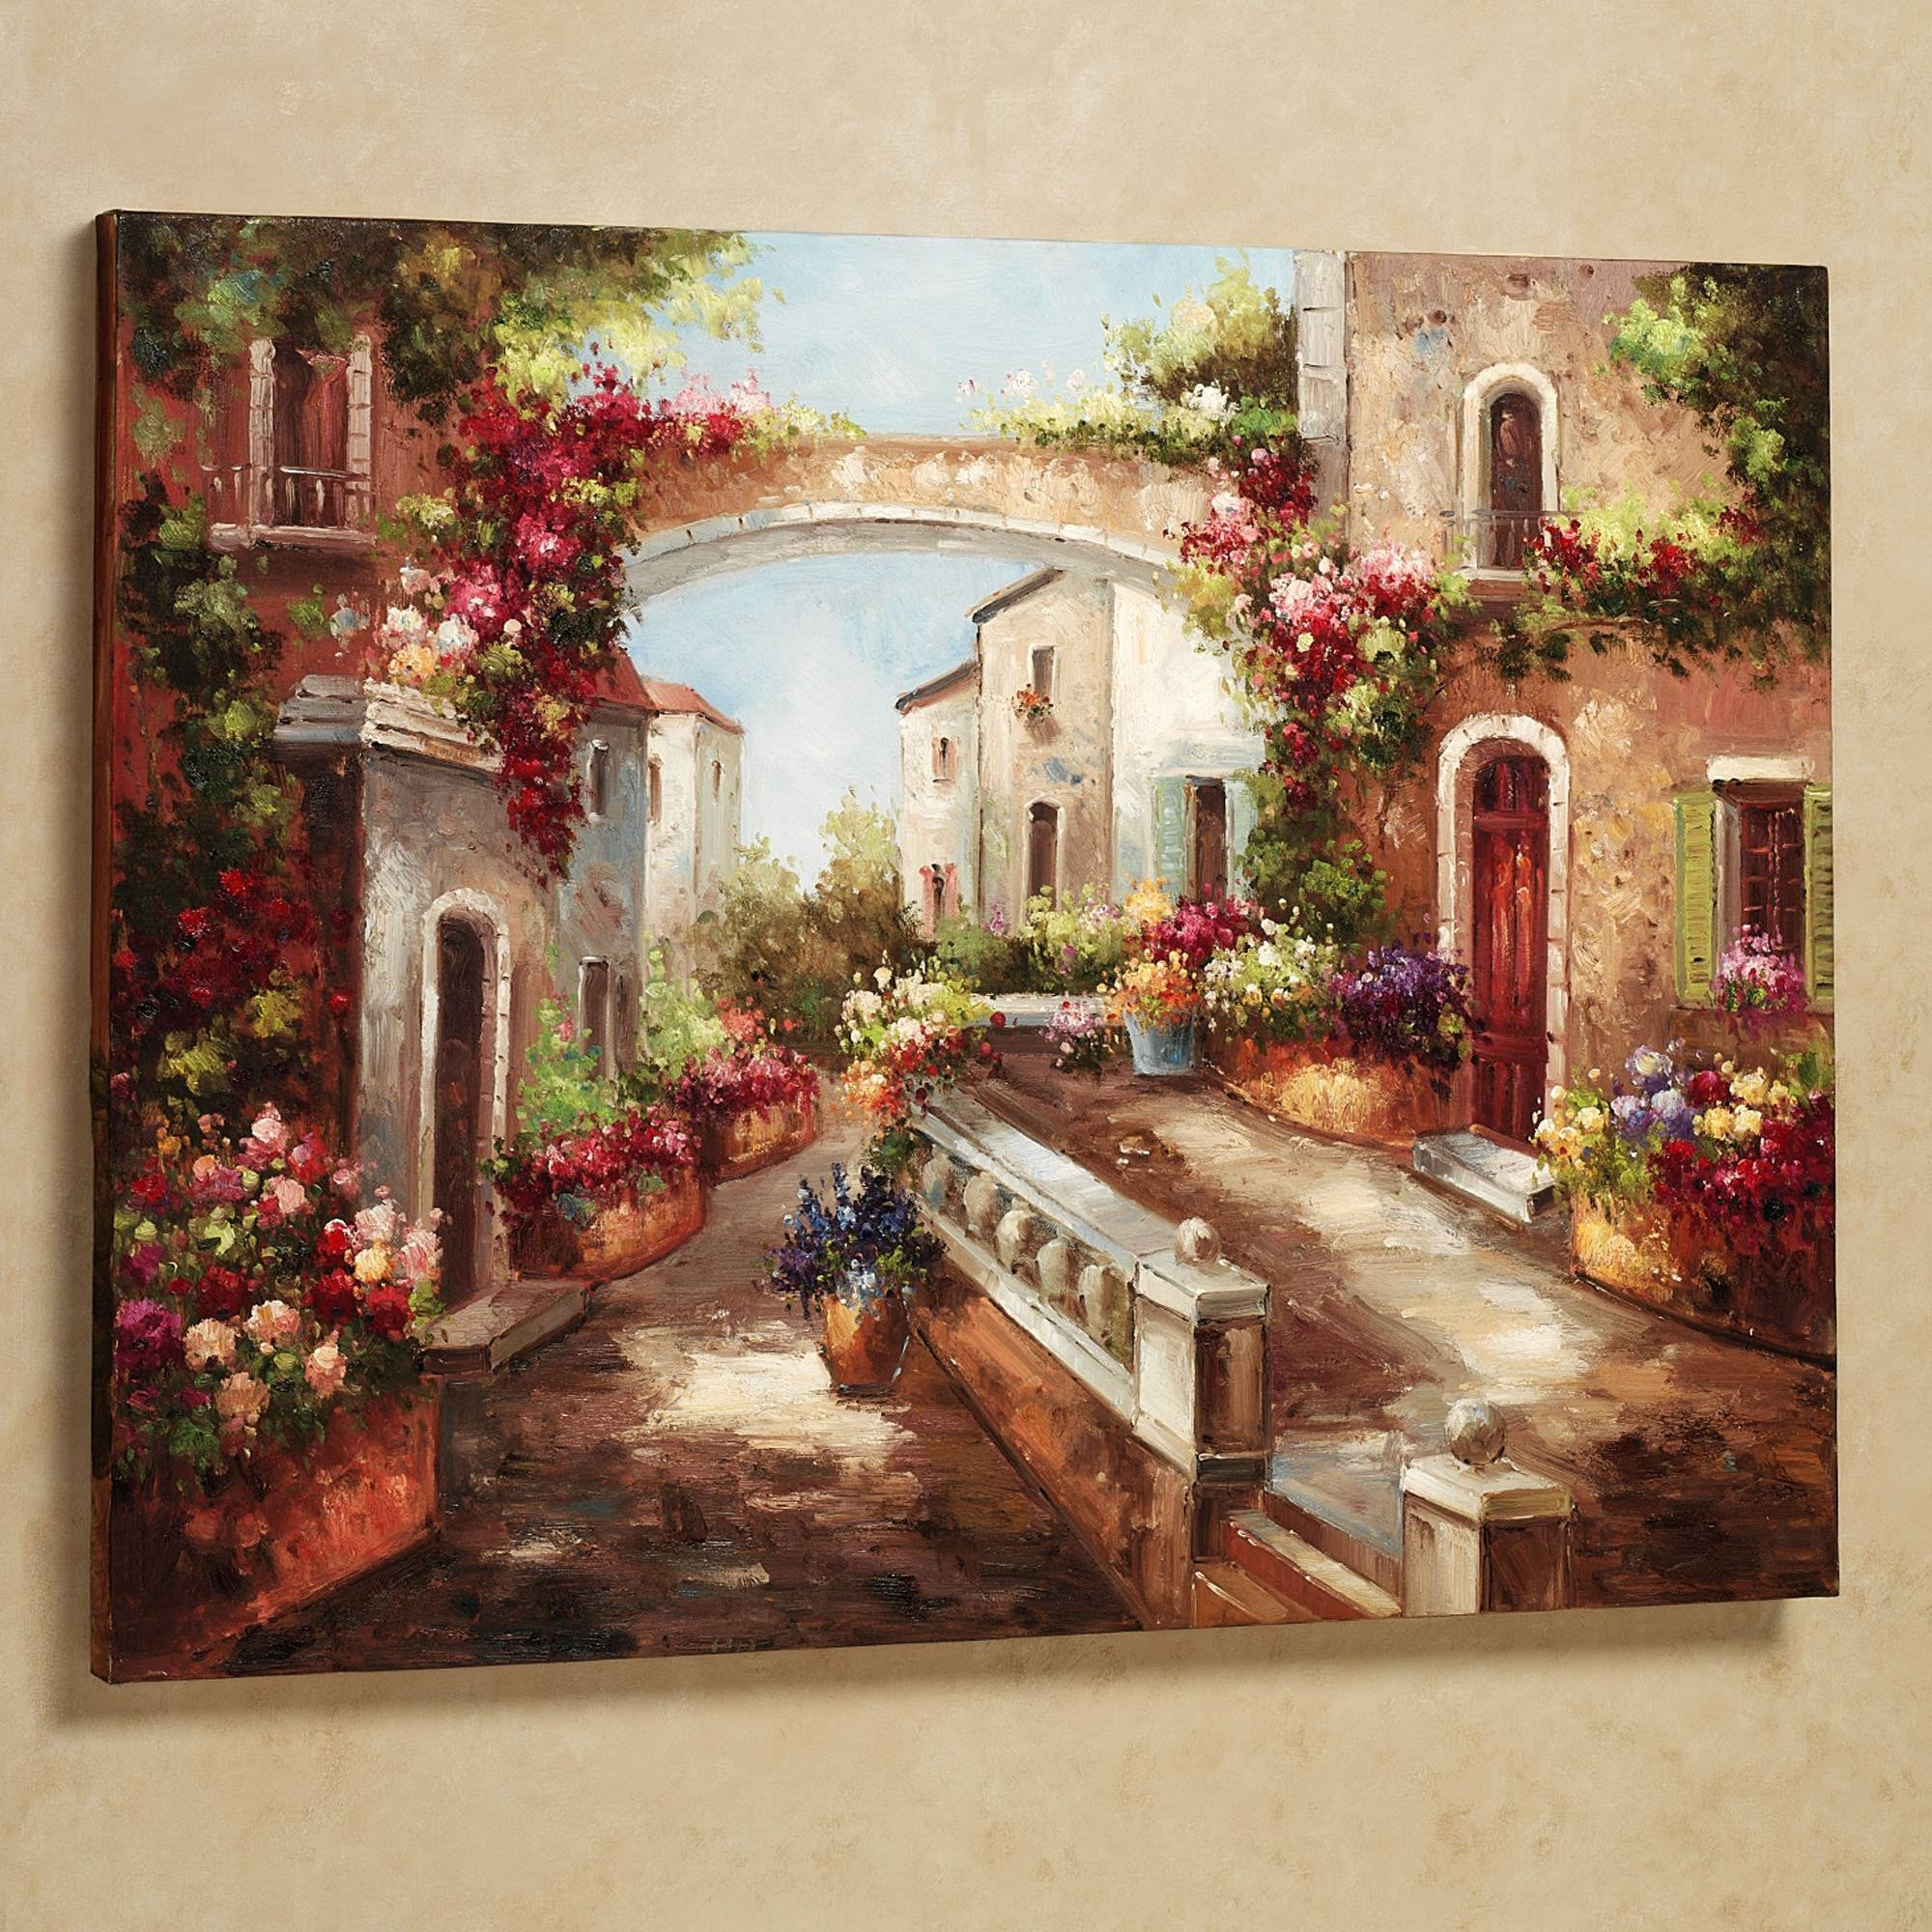 Wall Art Designs: Tuscan Wall Art Early Spring Tuscan Season Theme Intended For Recent Tuscan Wall Art Decor (View 18 of 20)